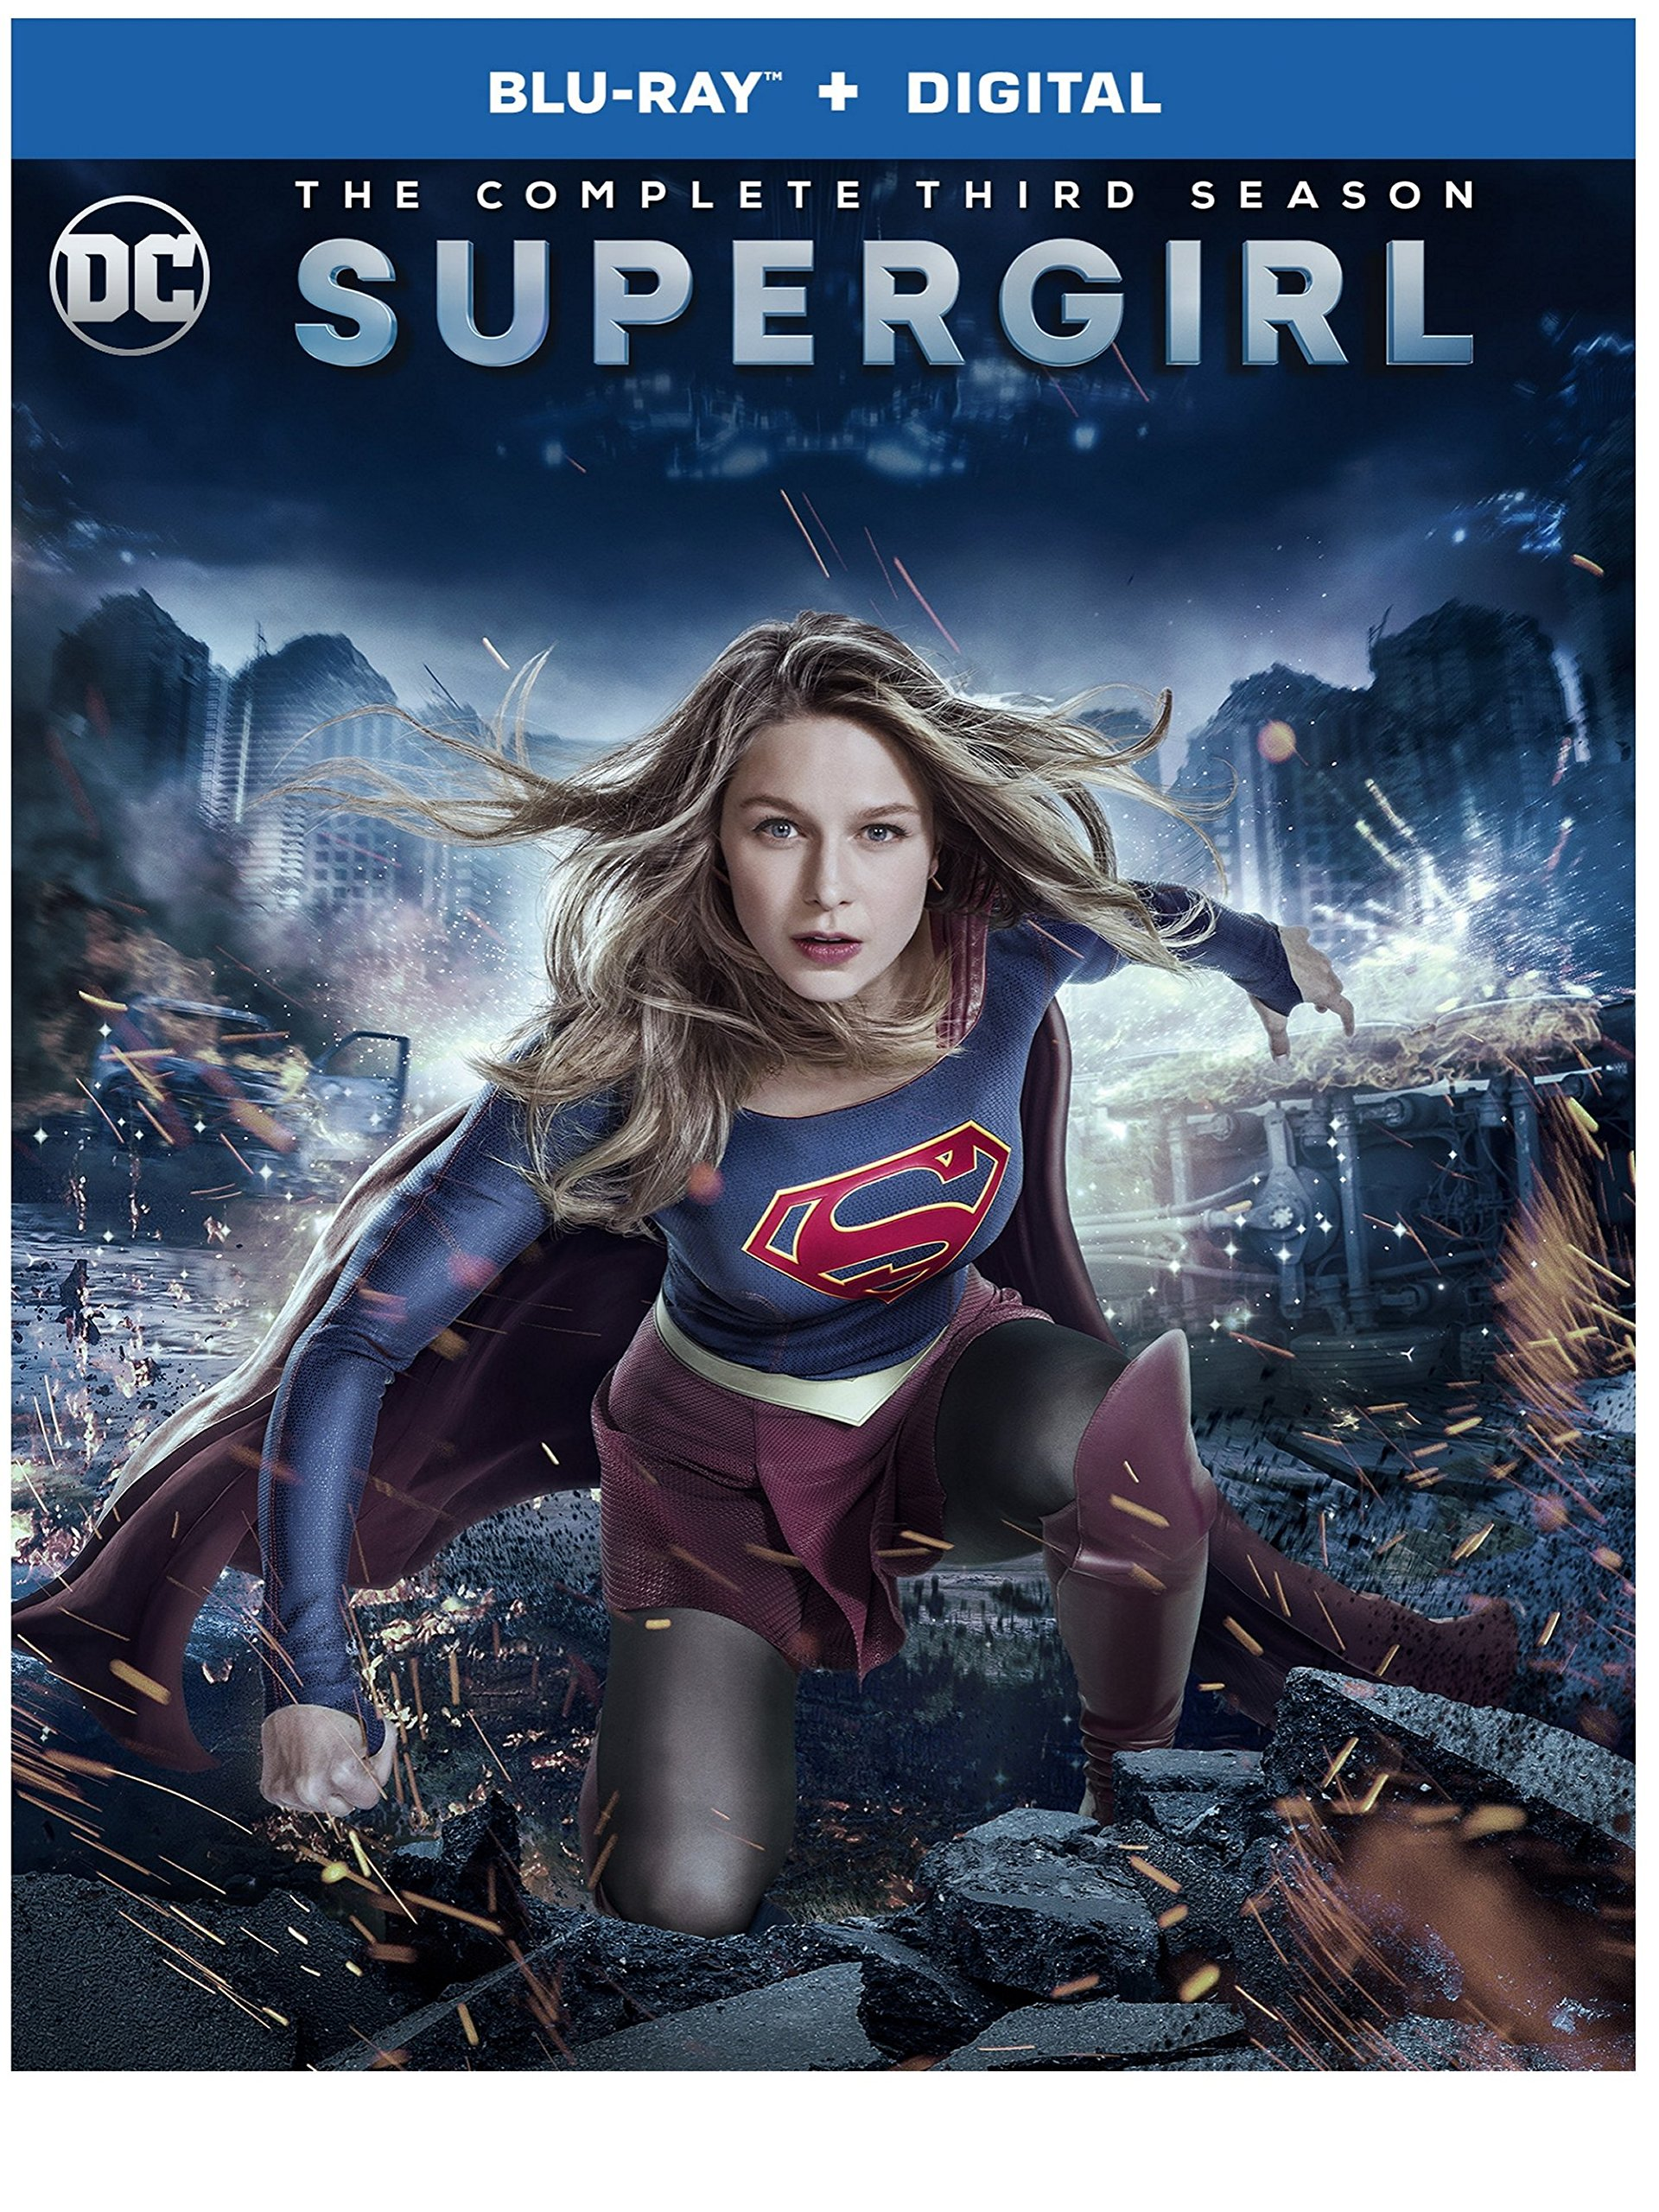 Blu-ray : Supergirl: The Complete Third Season (dc) (Boxed Set, Digital Copy, 4PC)